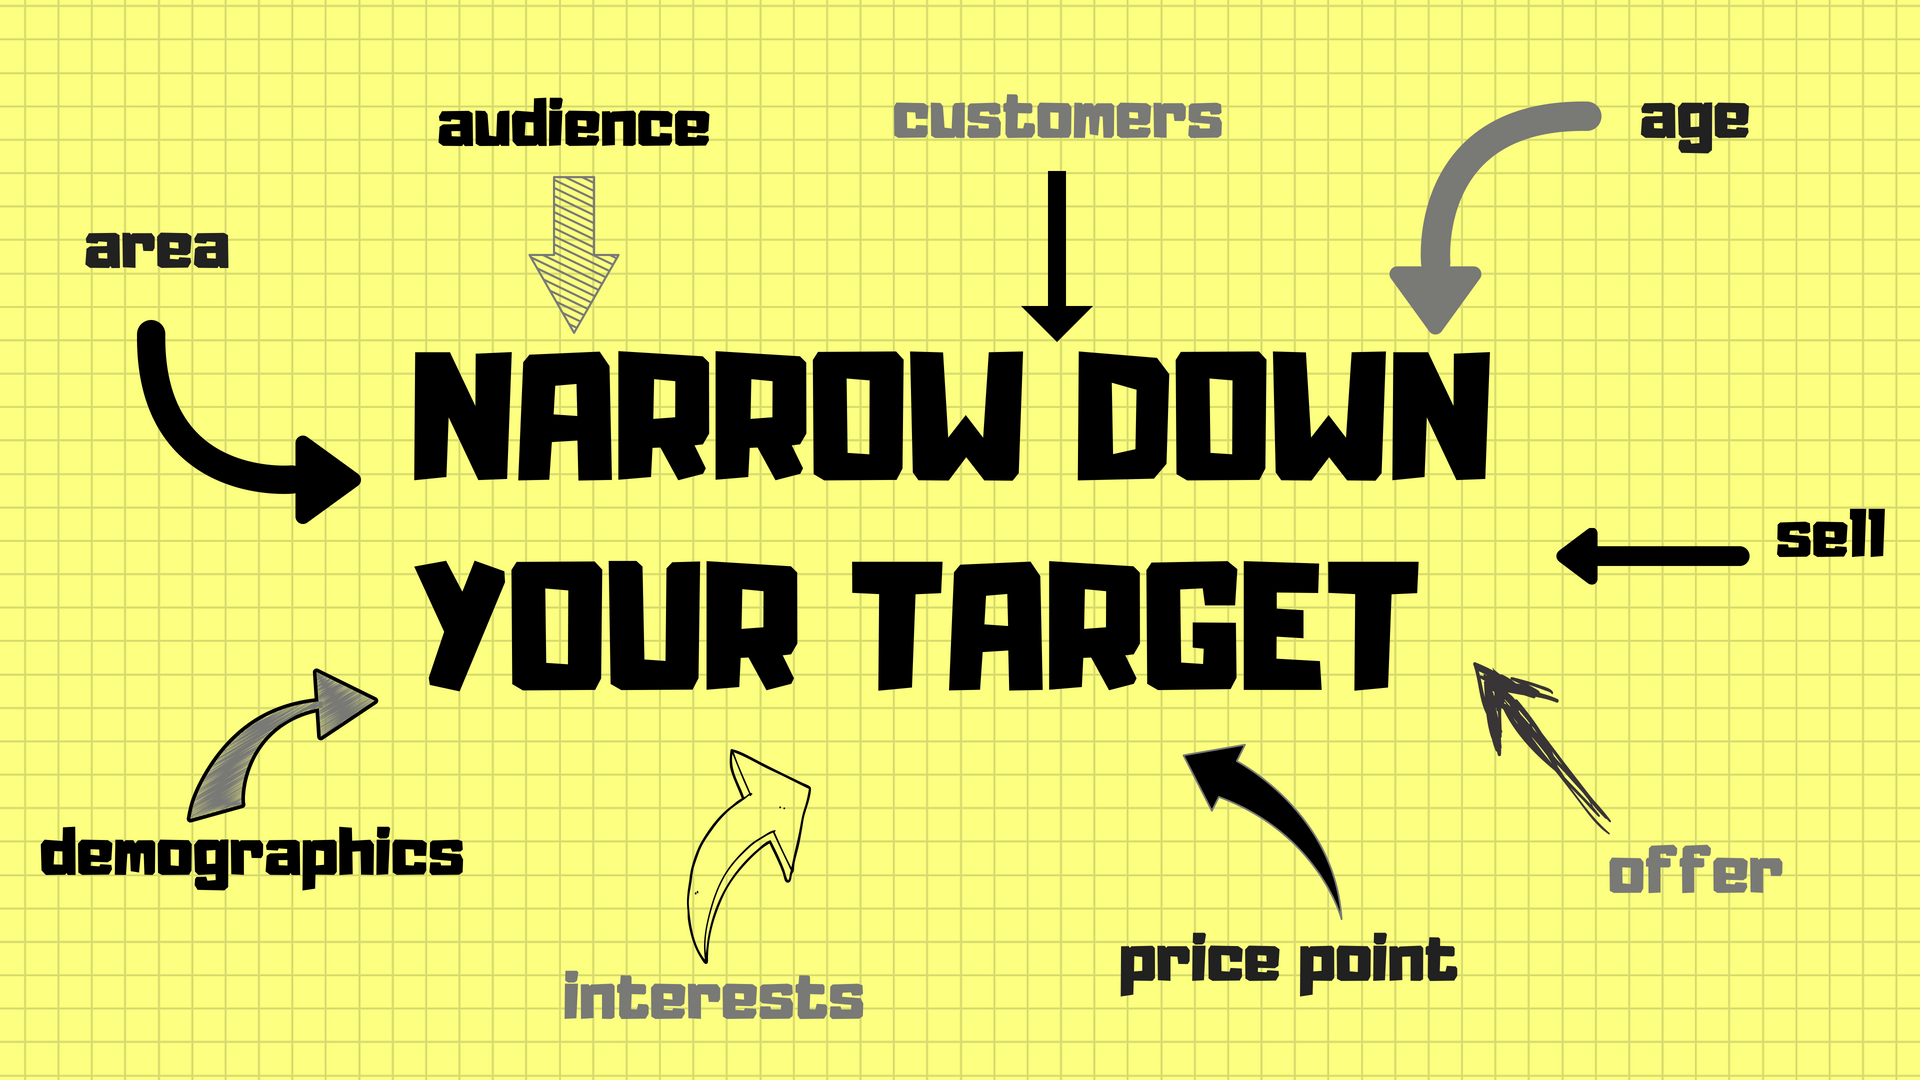 Narrow down your target.png